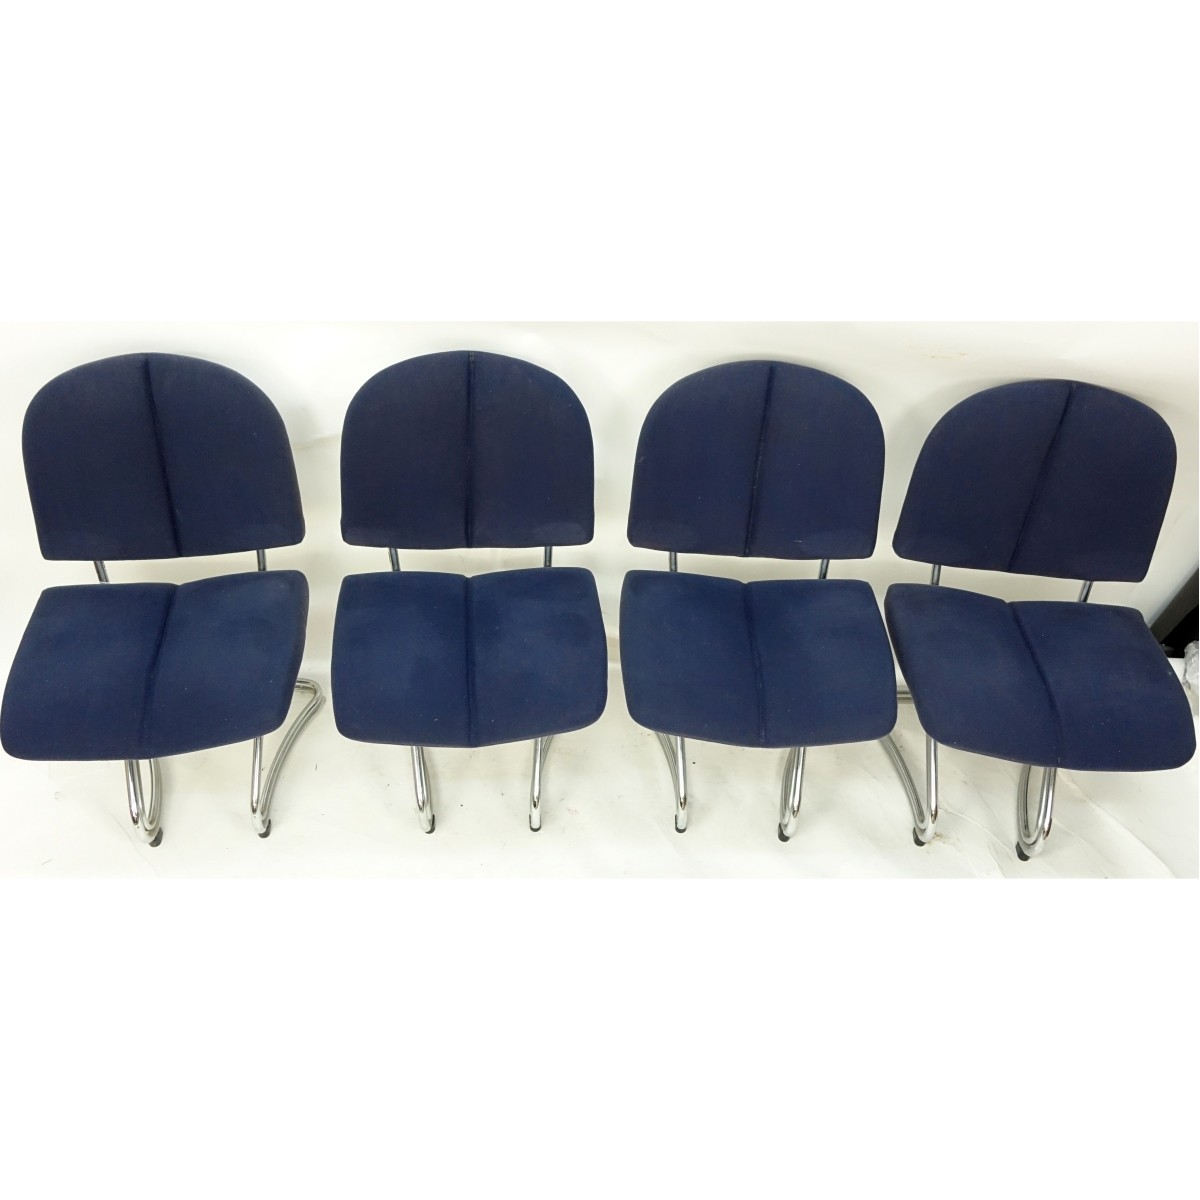 Four (4) Modern Chrome and Upholstered Chairs